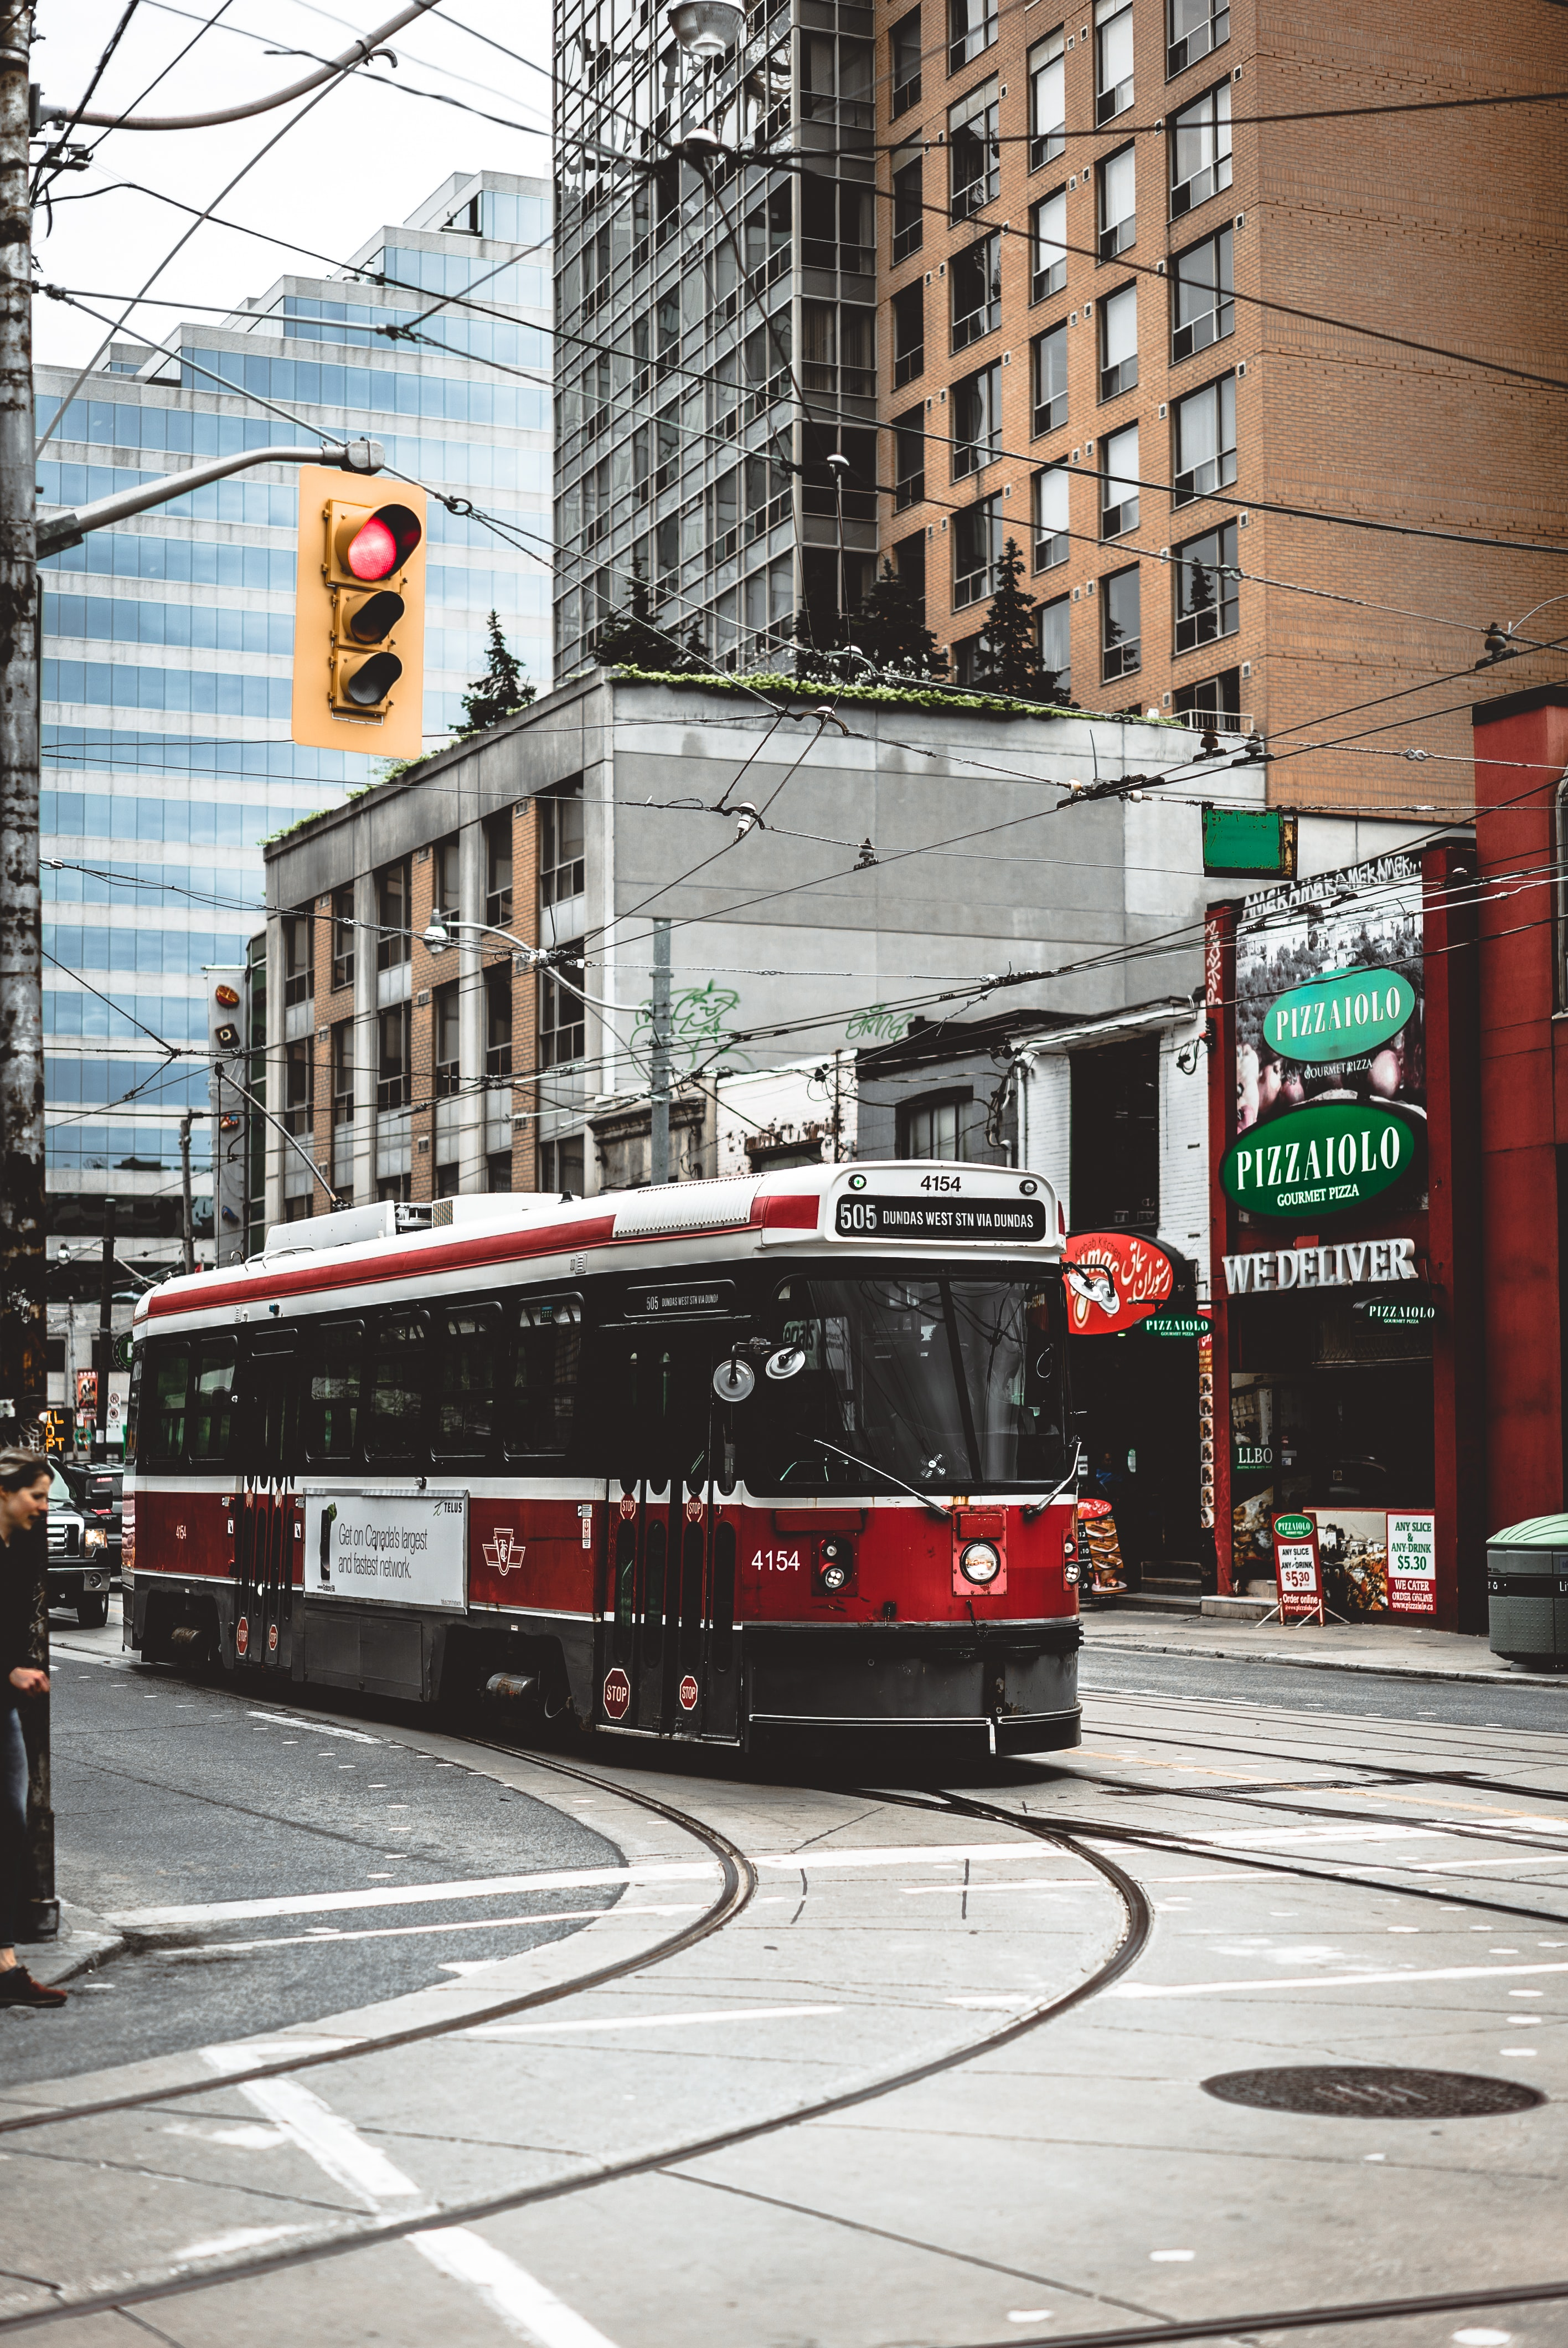 A red trolley car on the tracks in Toronto